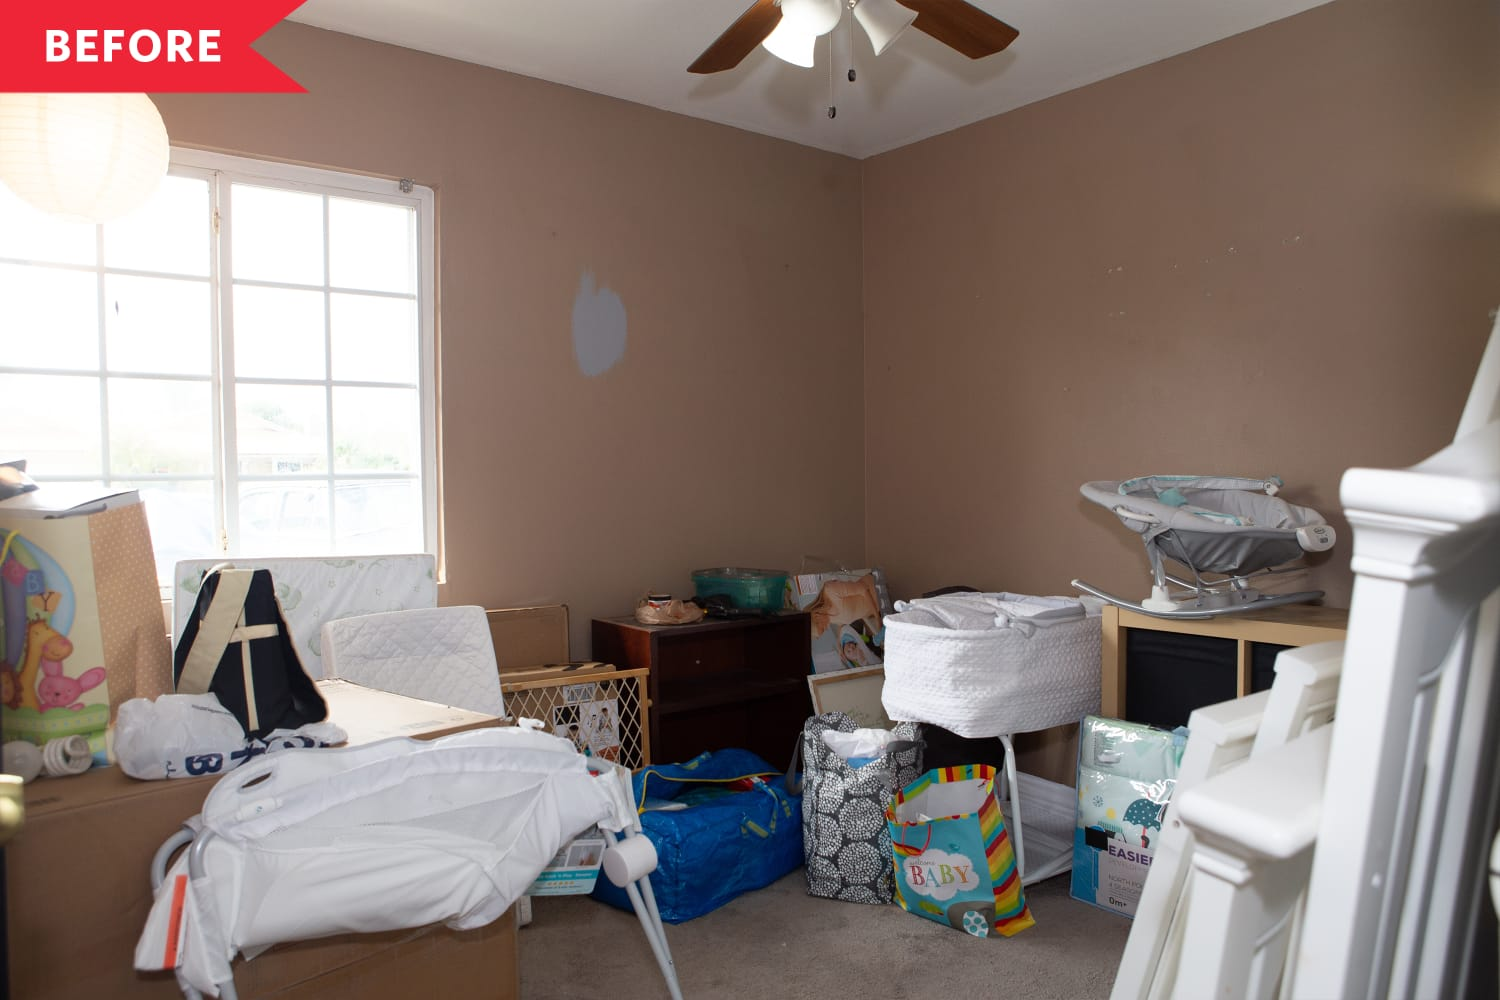 """HGTV's """"Help! I Wrecked My House"""" Renovated This Cluttered Space Into a Baby-Ready Nursery"""